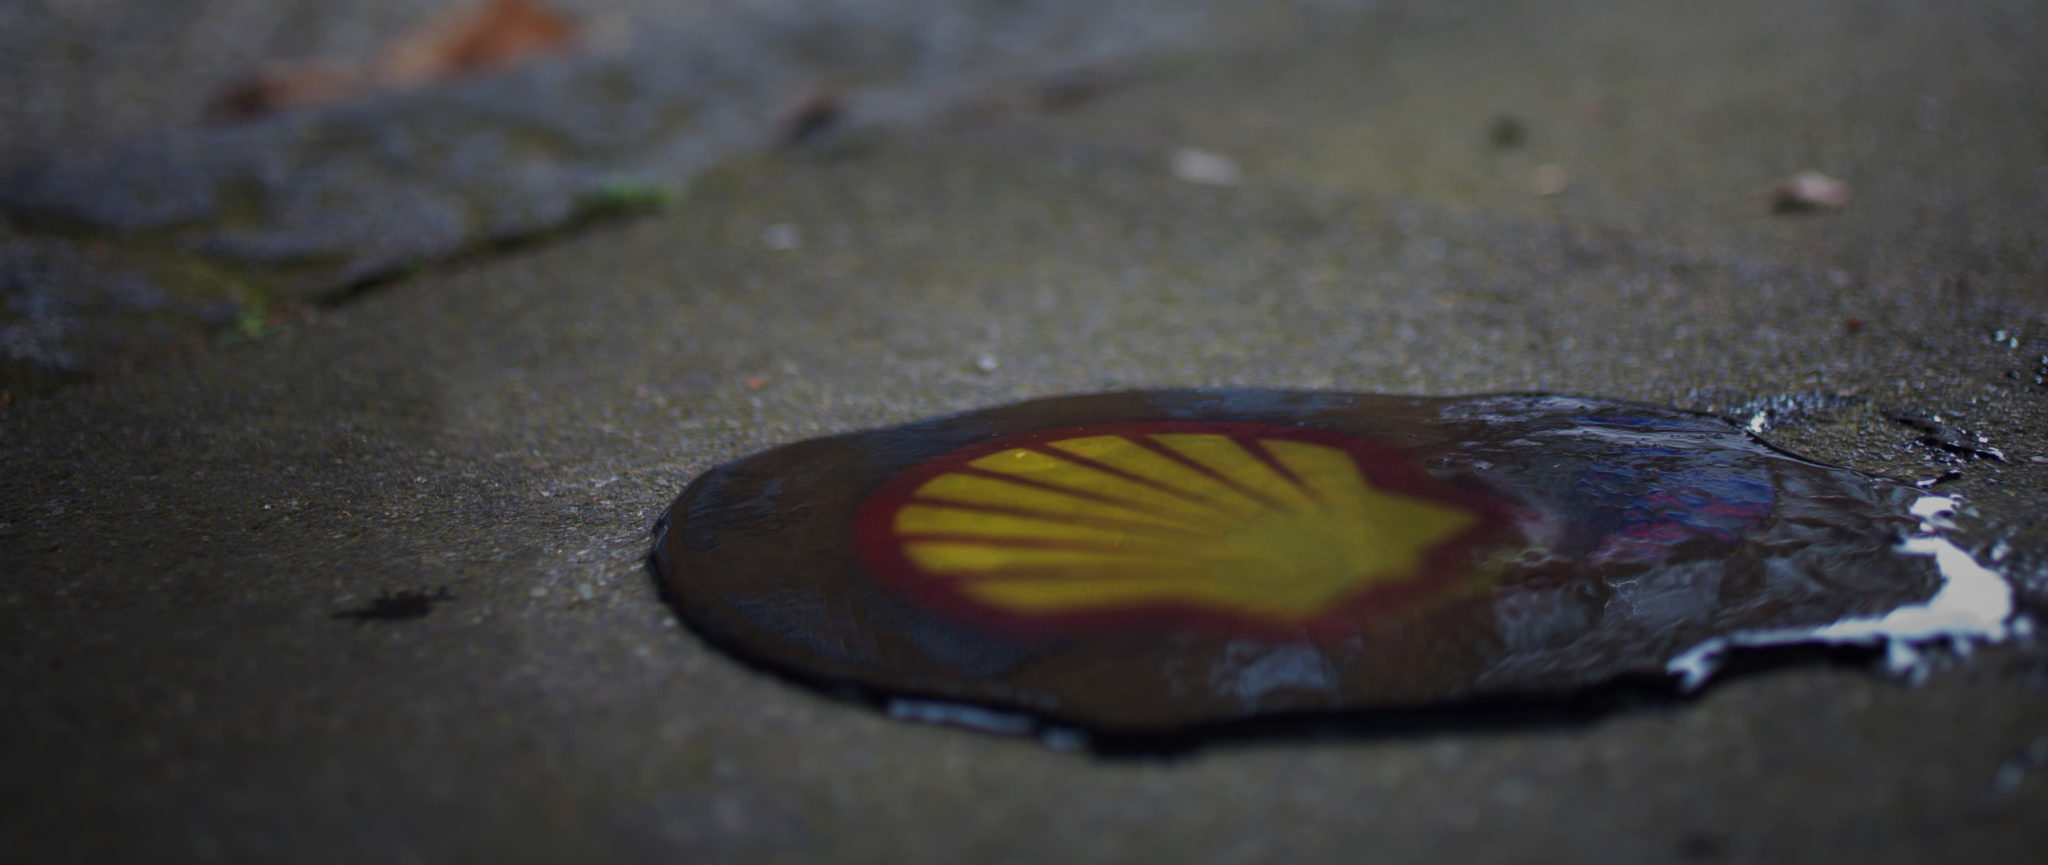 Shell must be investigated for complicity in murder, rape and torture